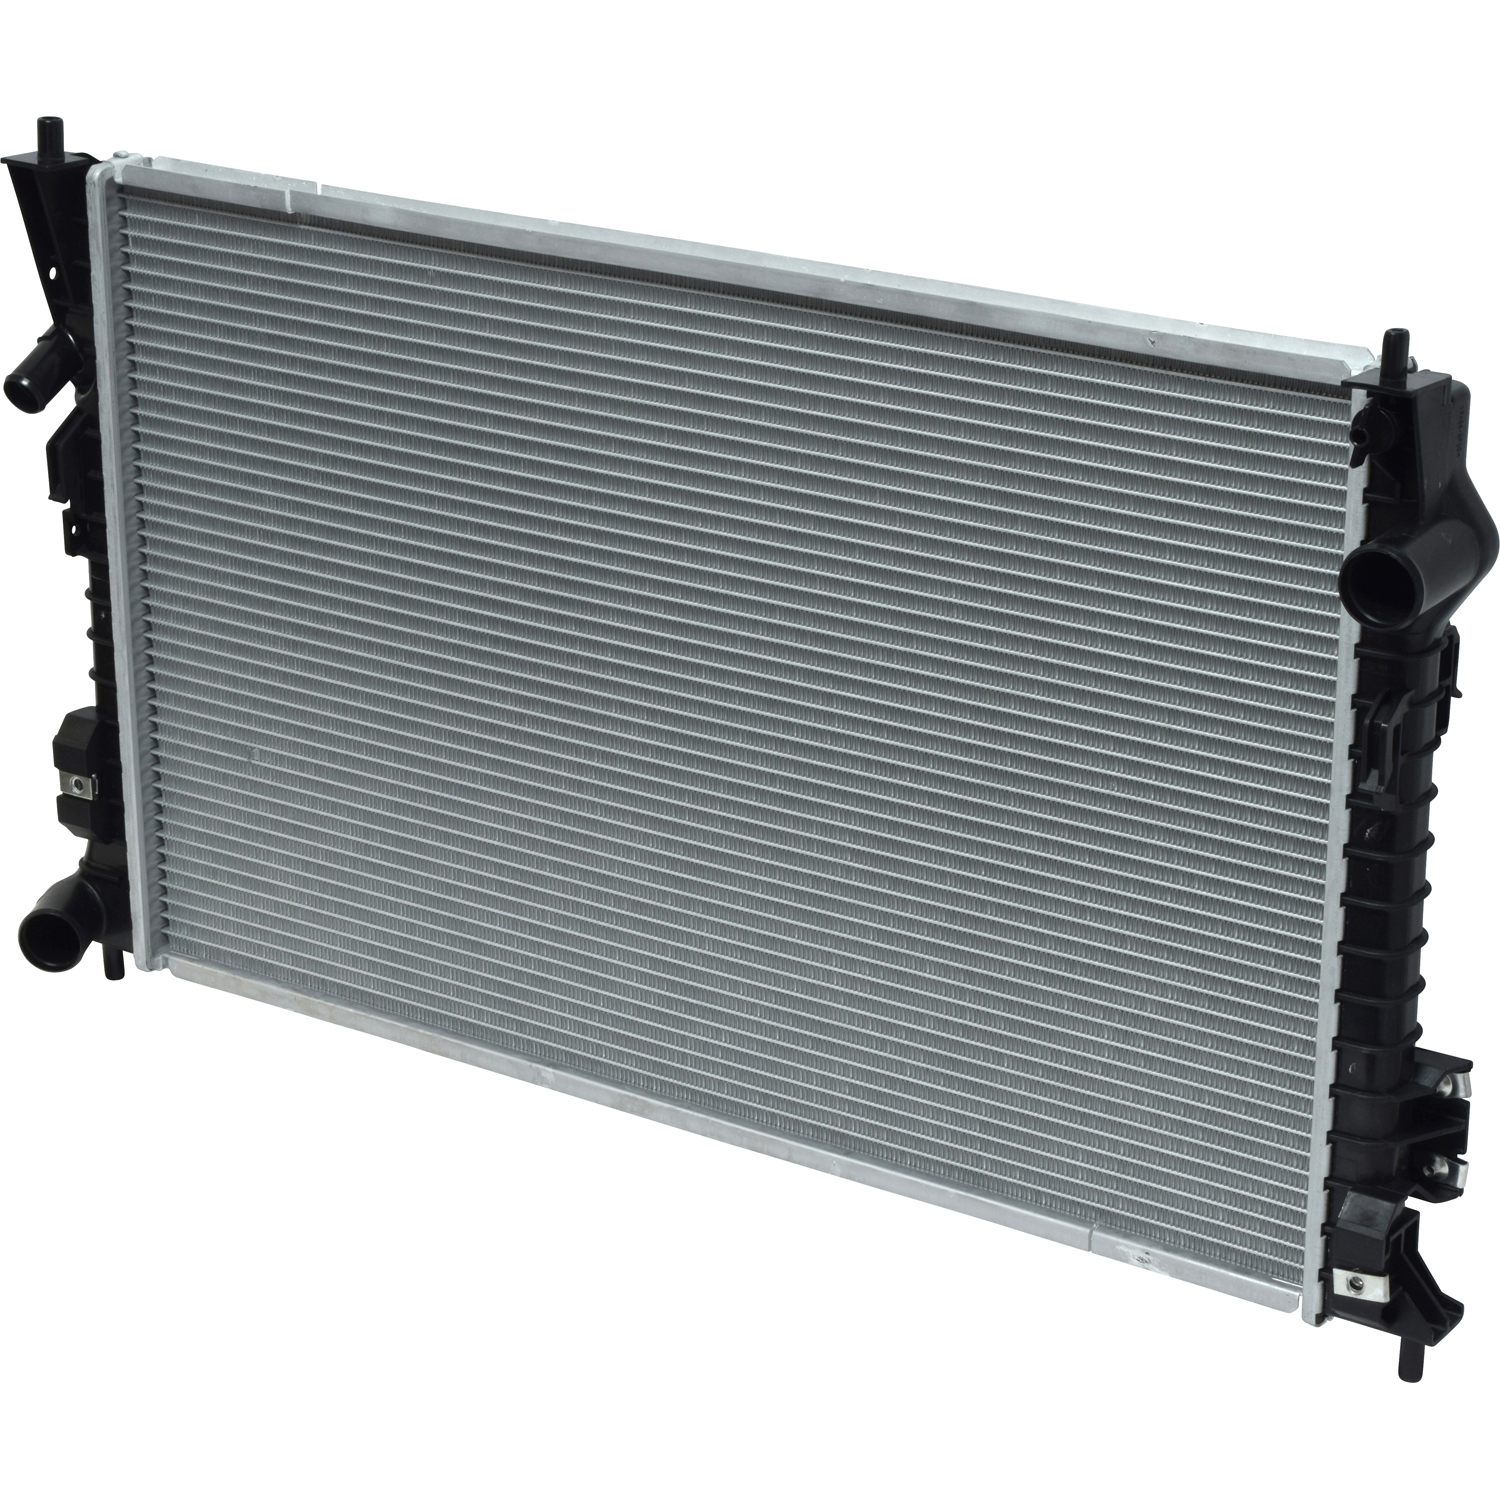 Genuine Ford Radiator 7T4Z-8005-B